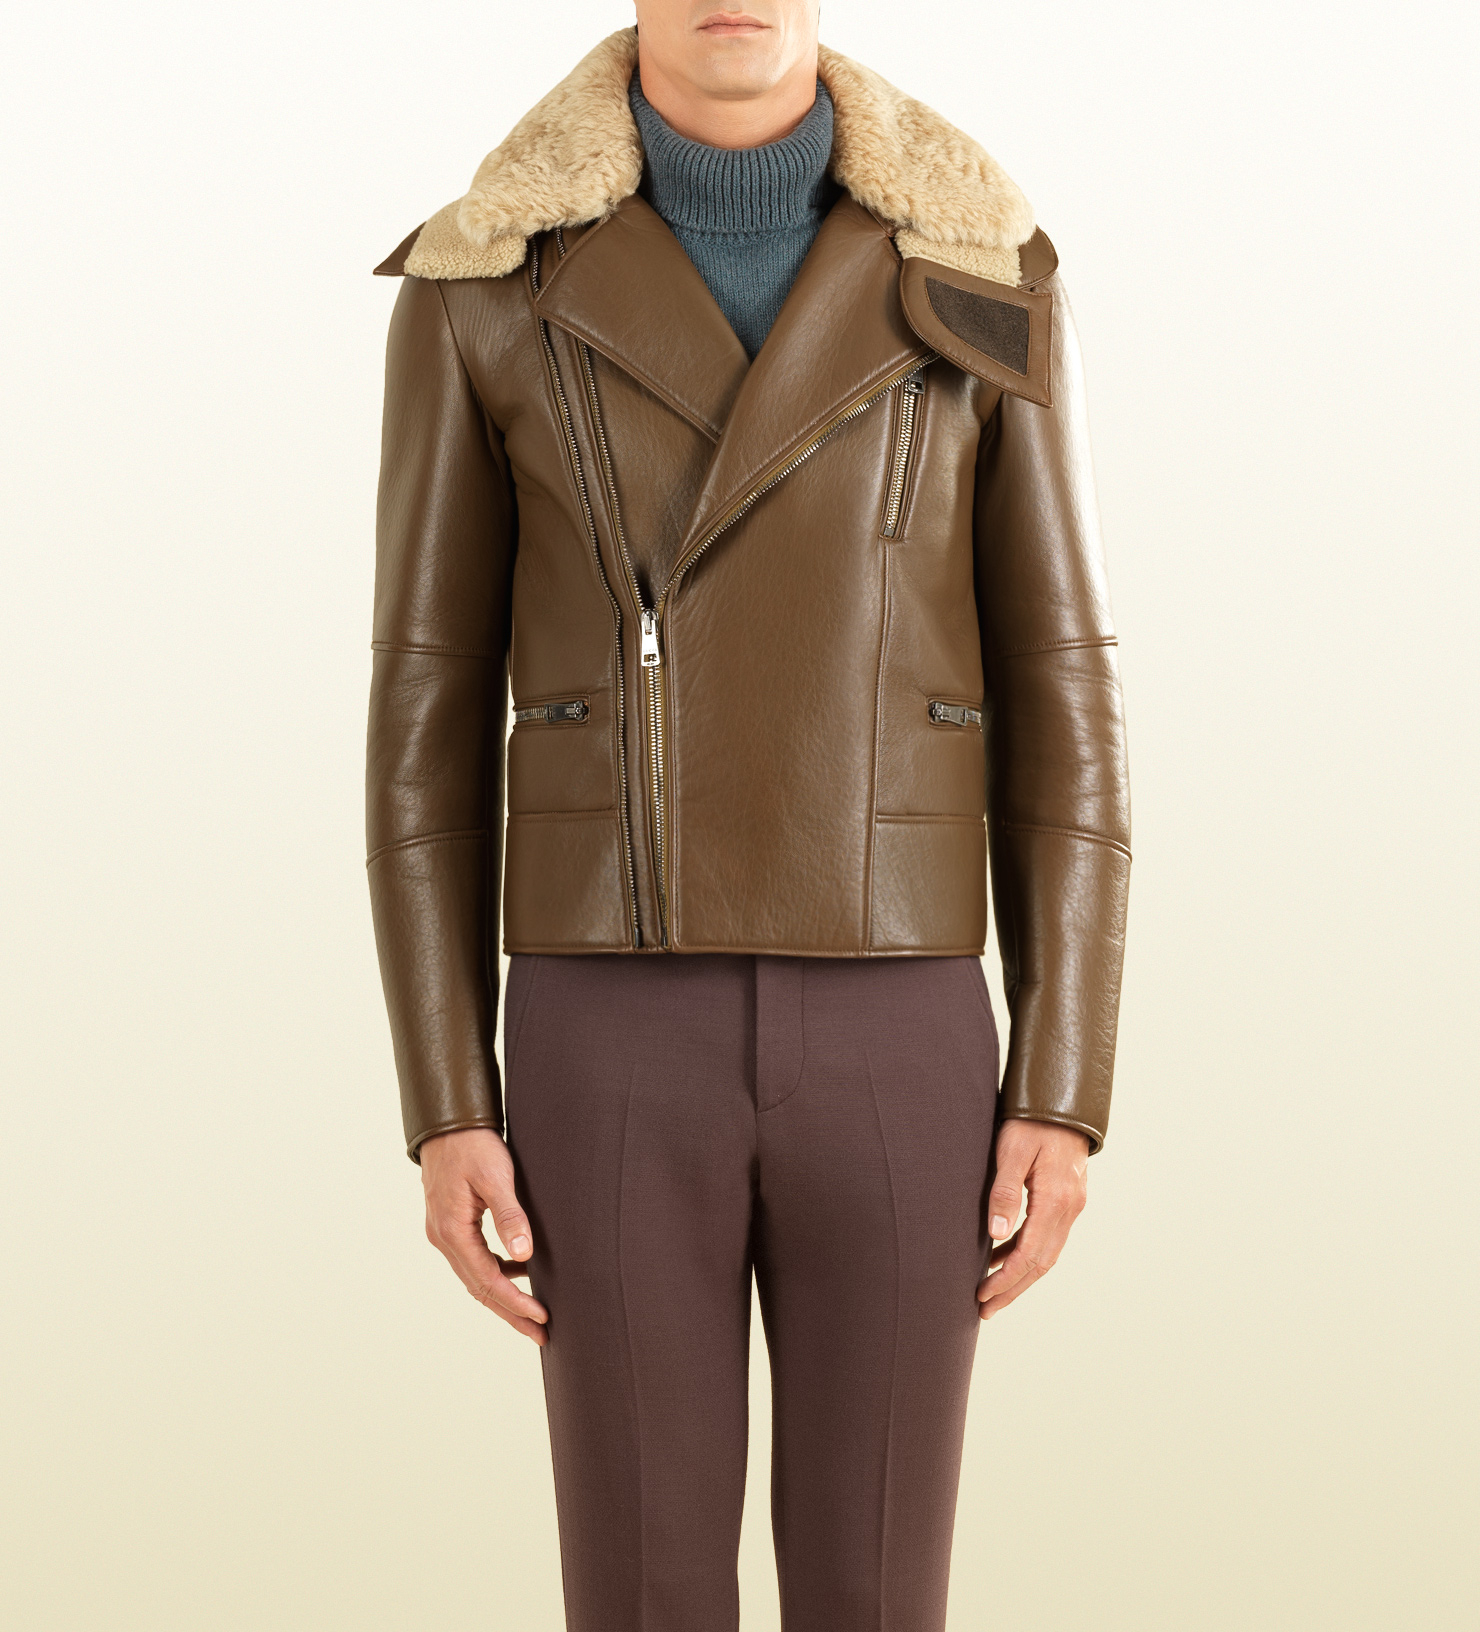 Gucci leather jacket shearling